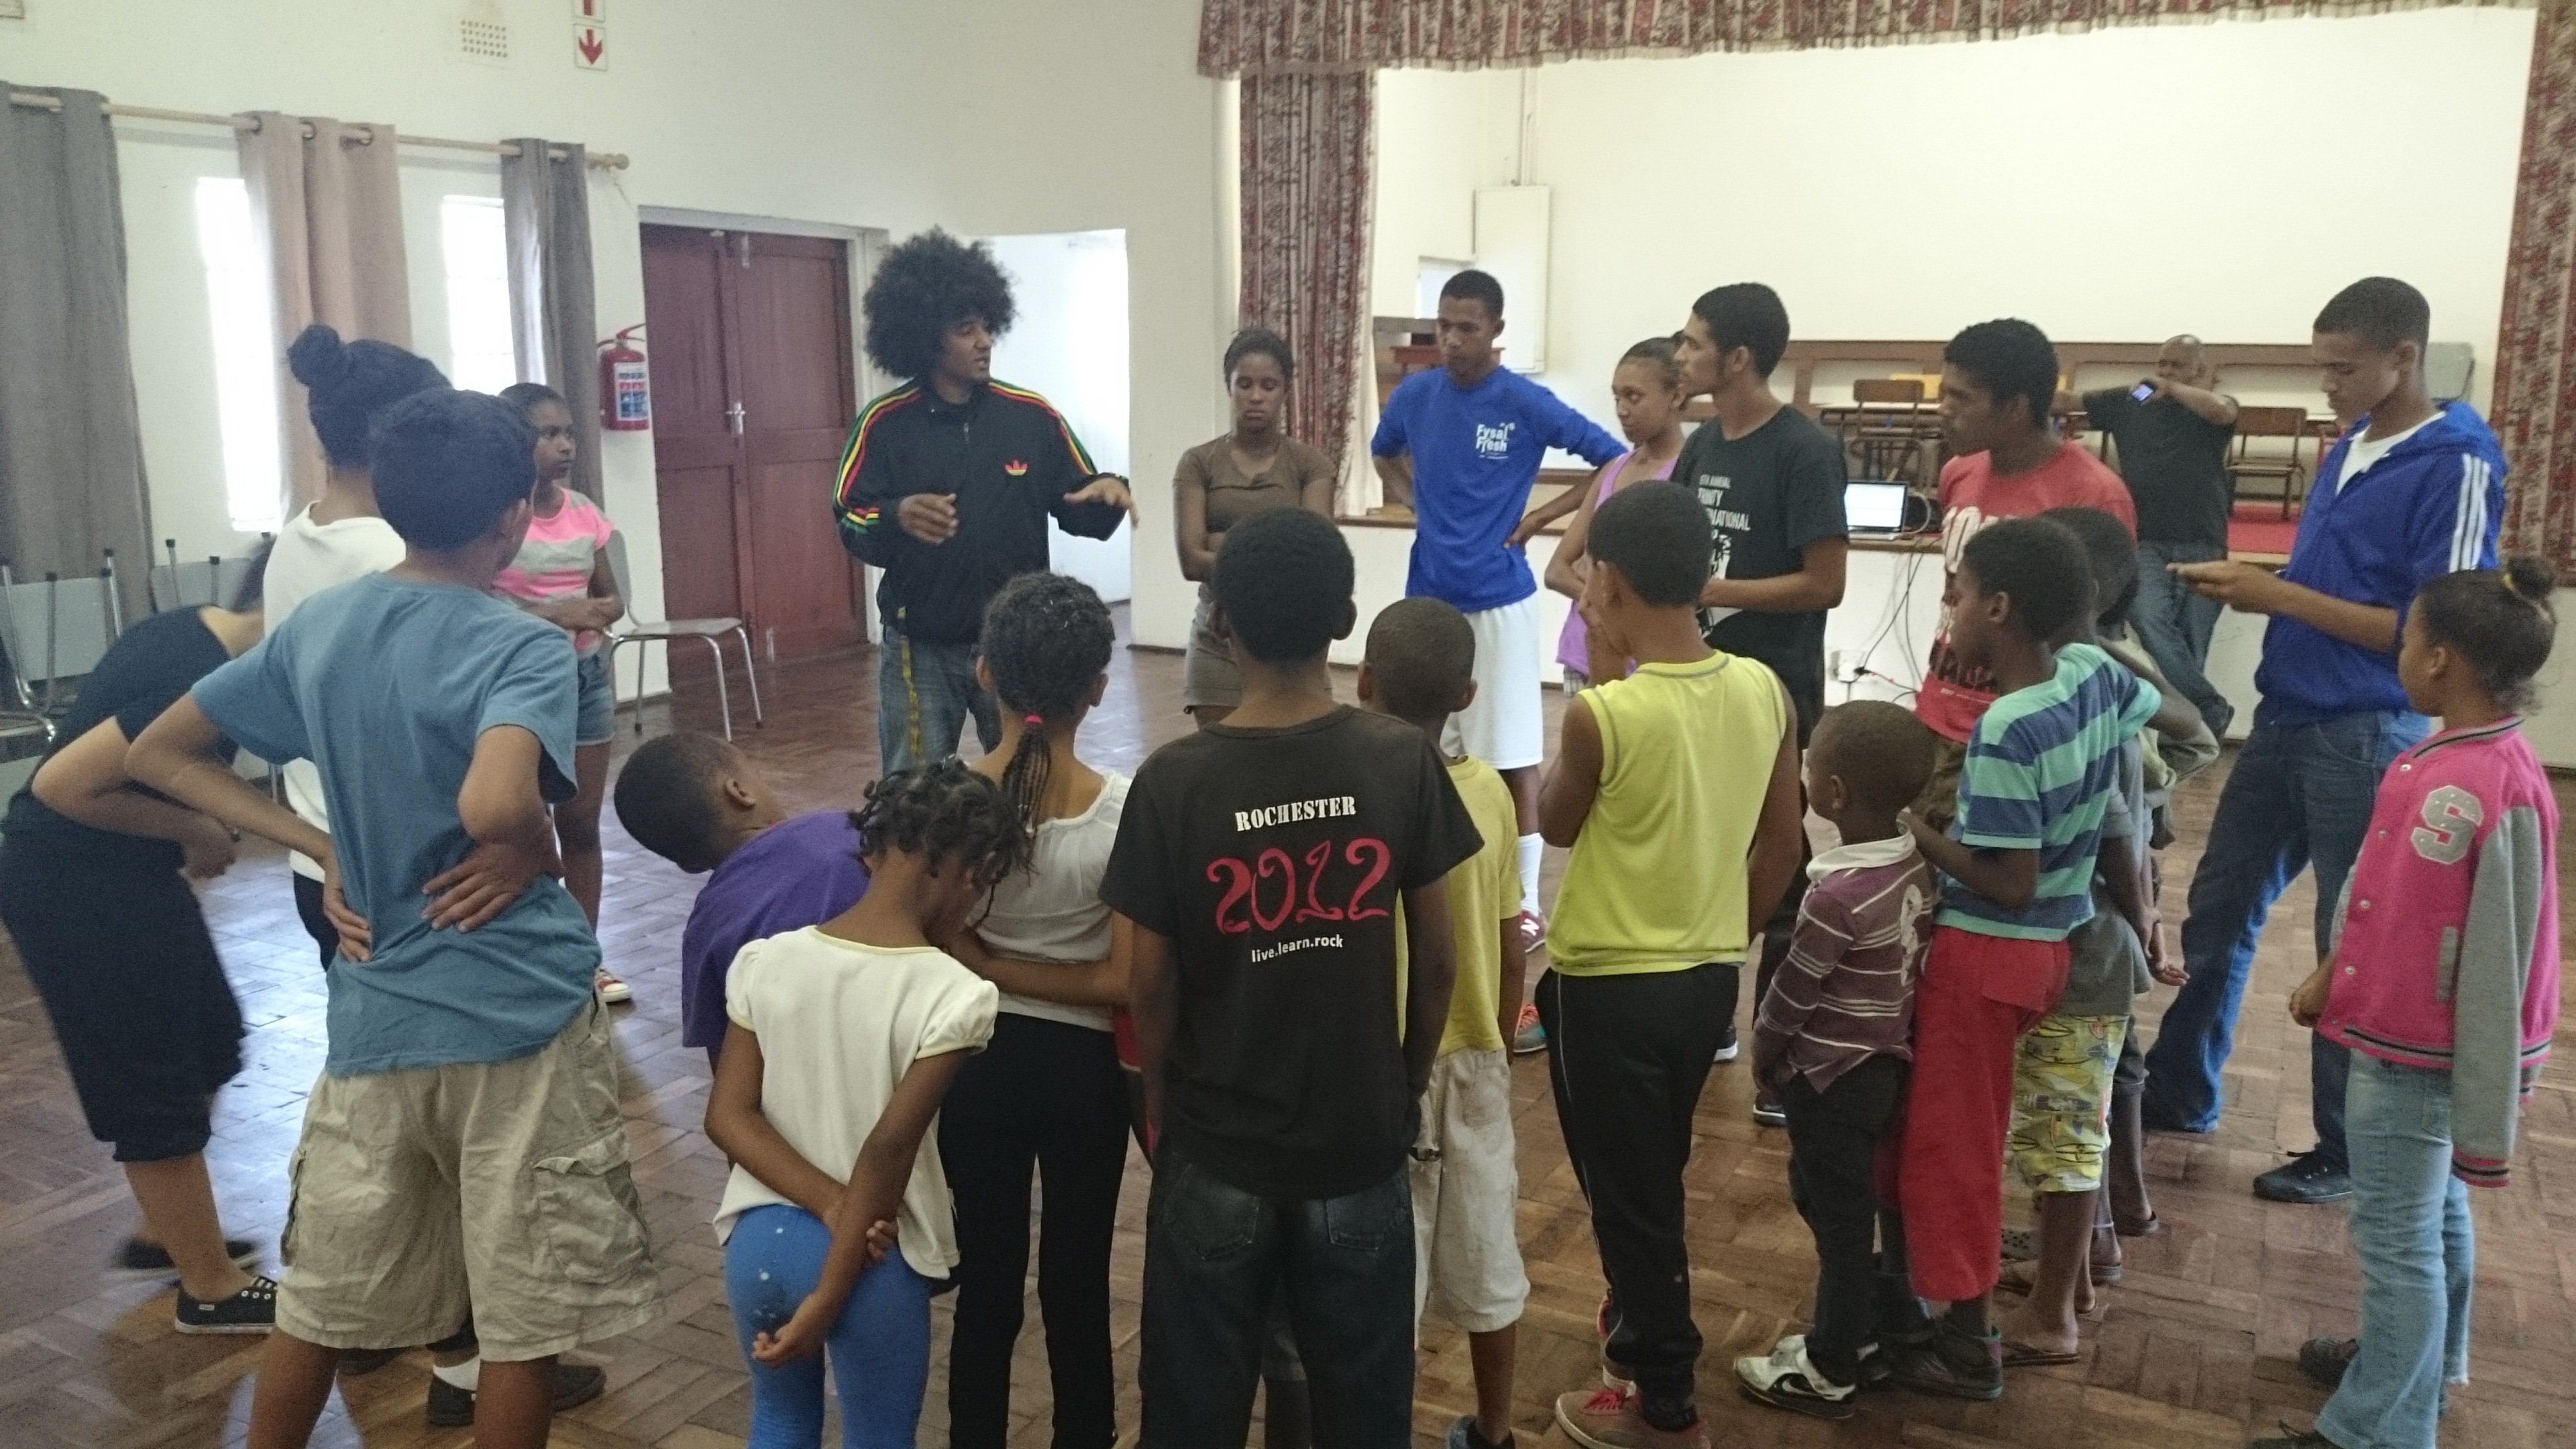 Emile YX? Dance Workshops